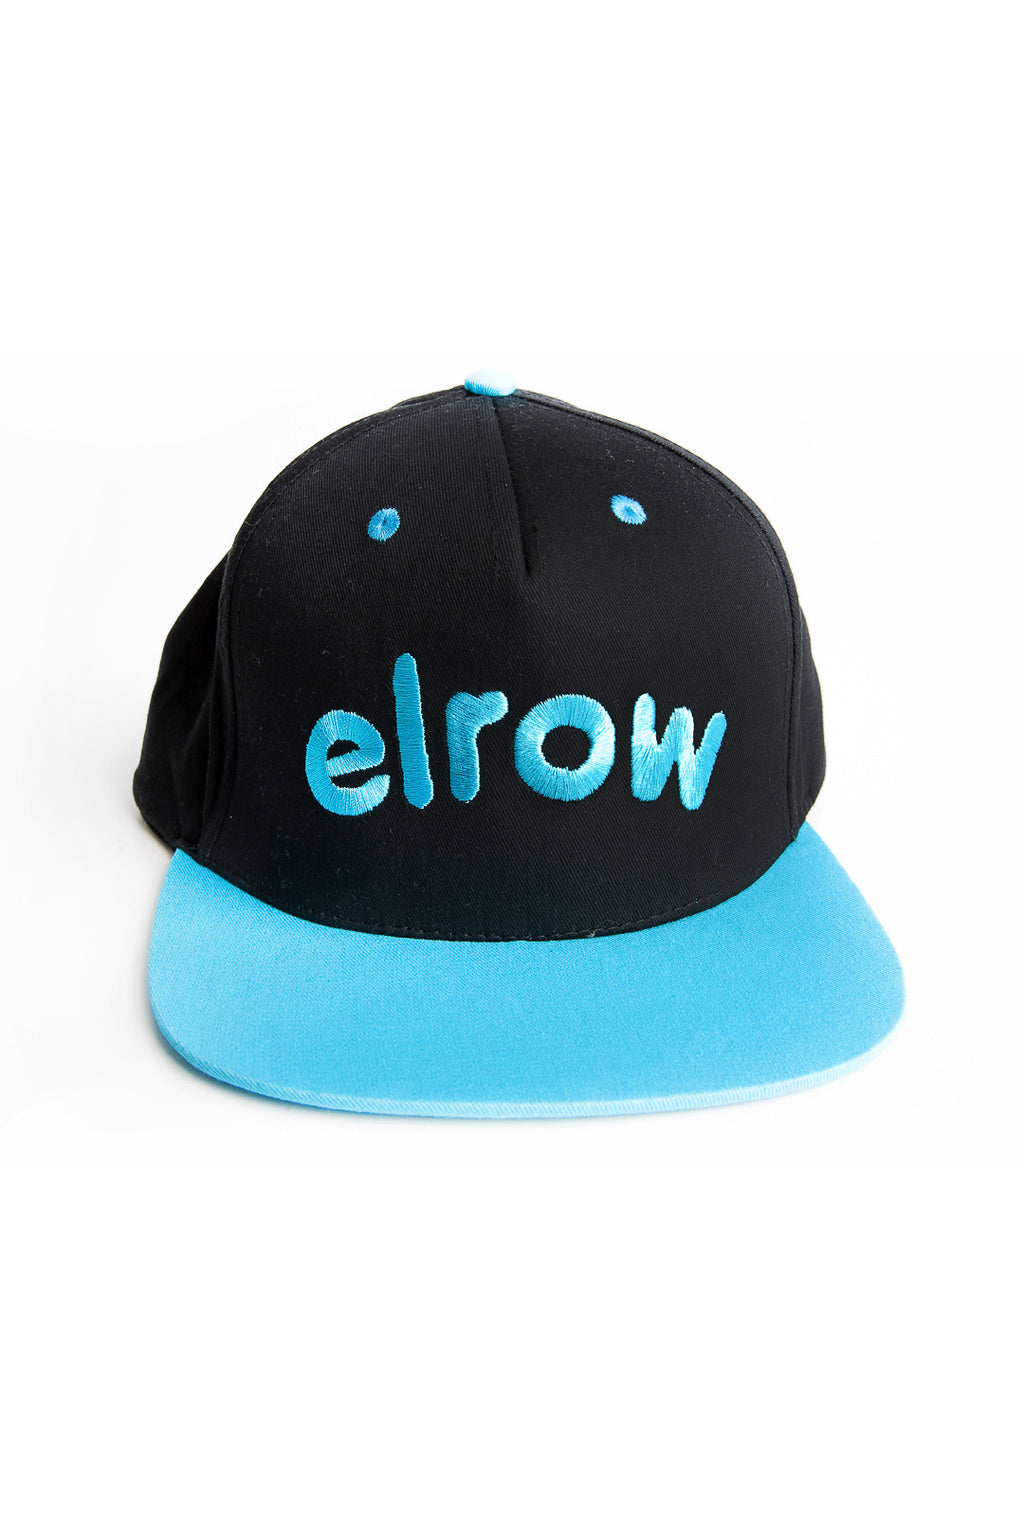 elrow Blue Sea hat